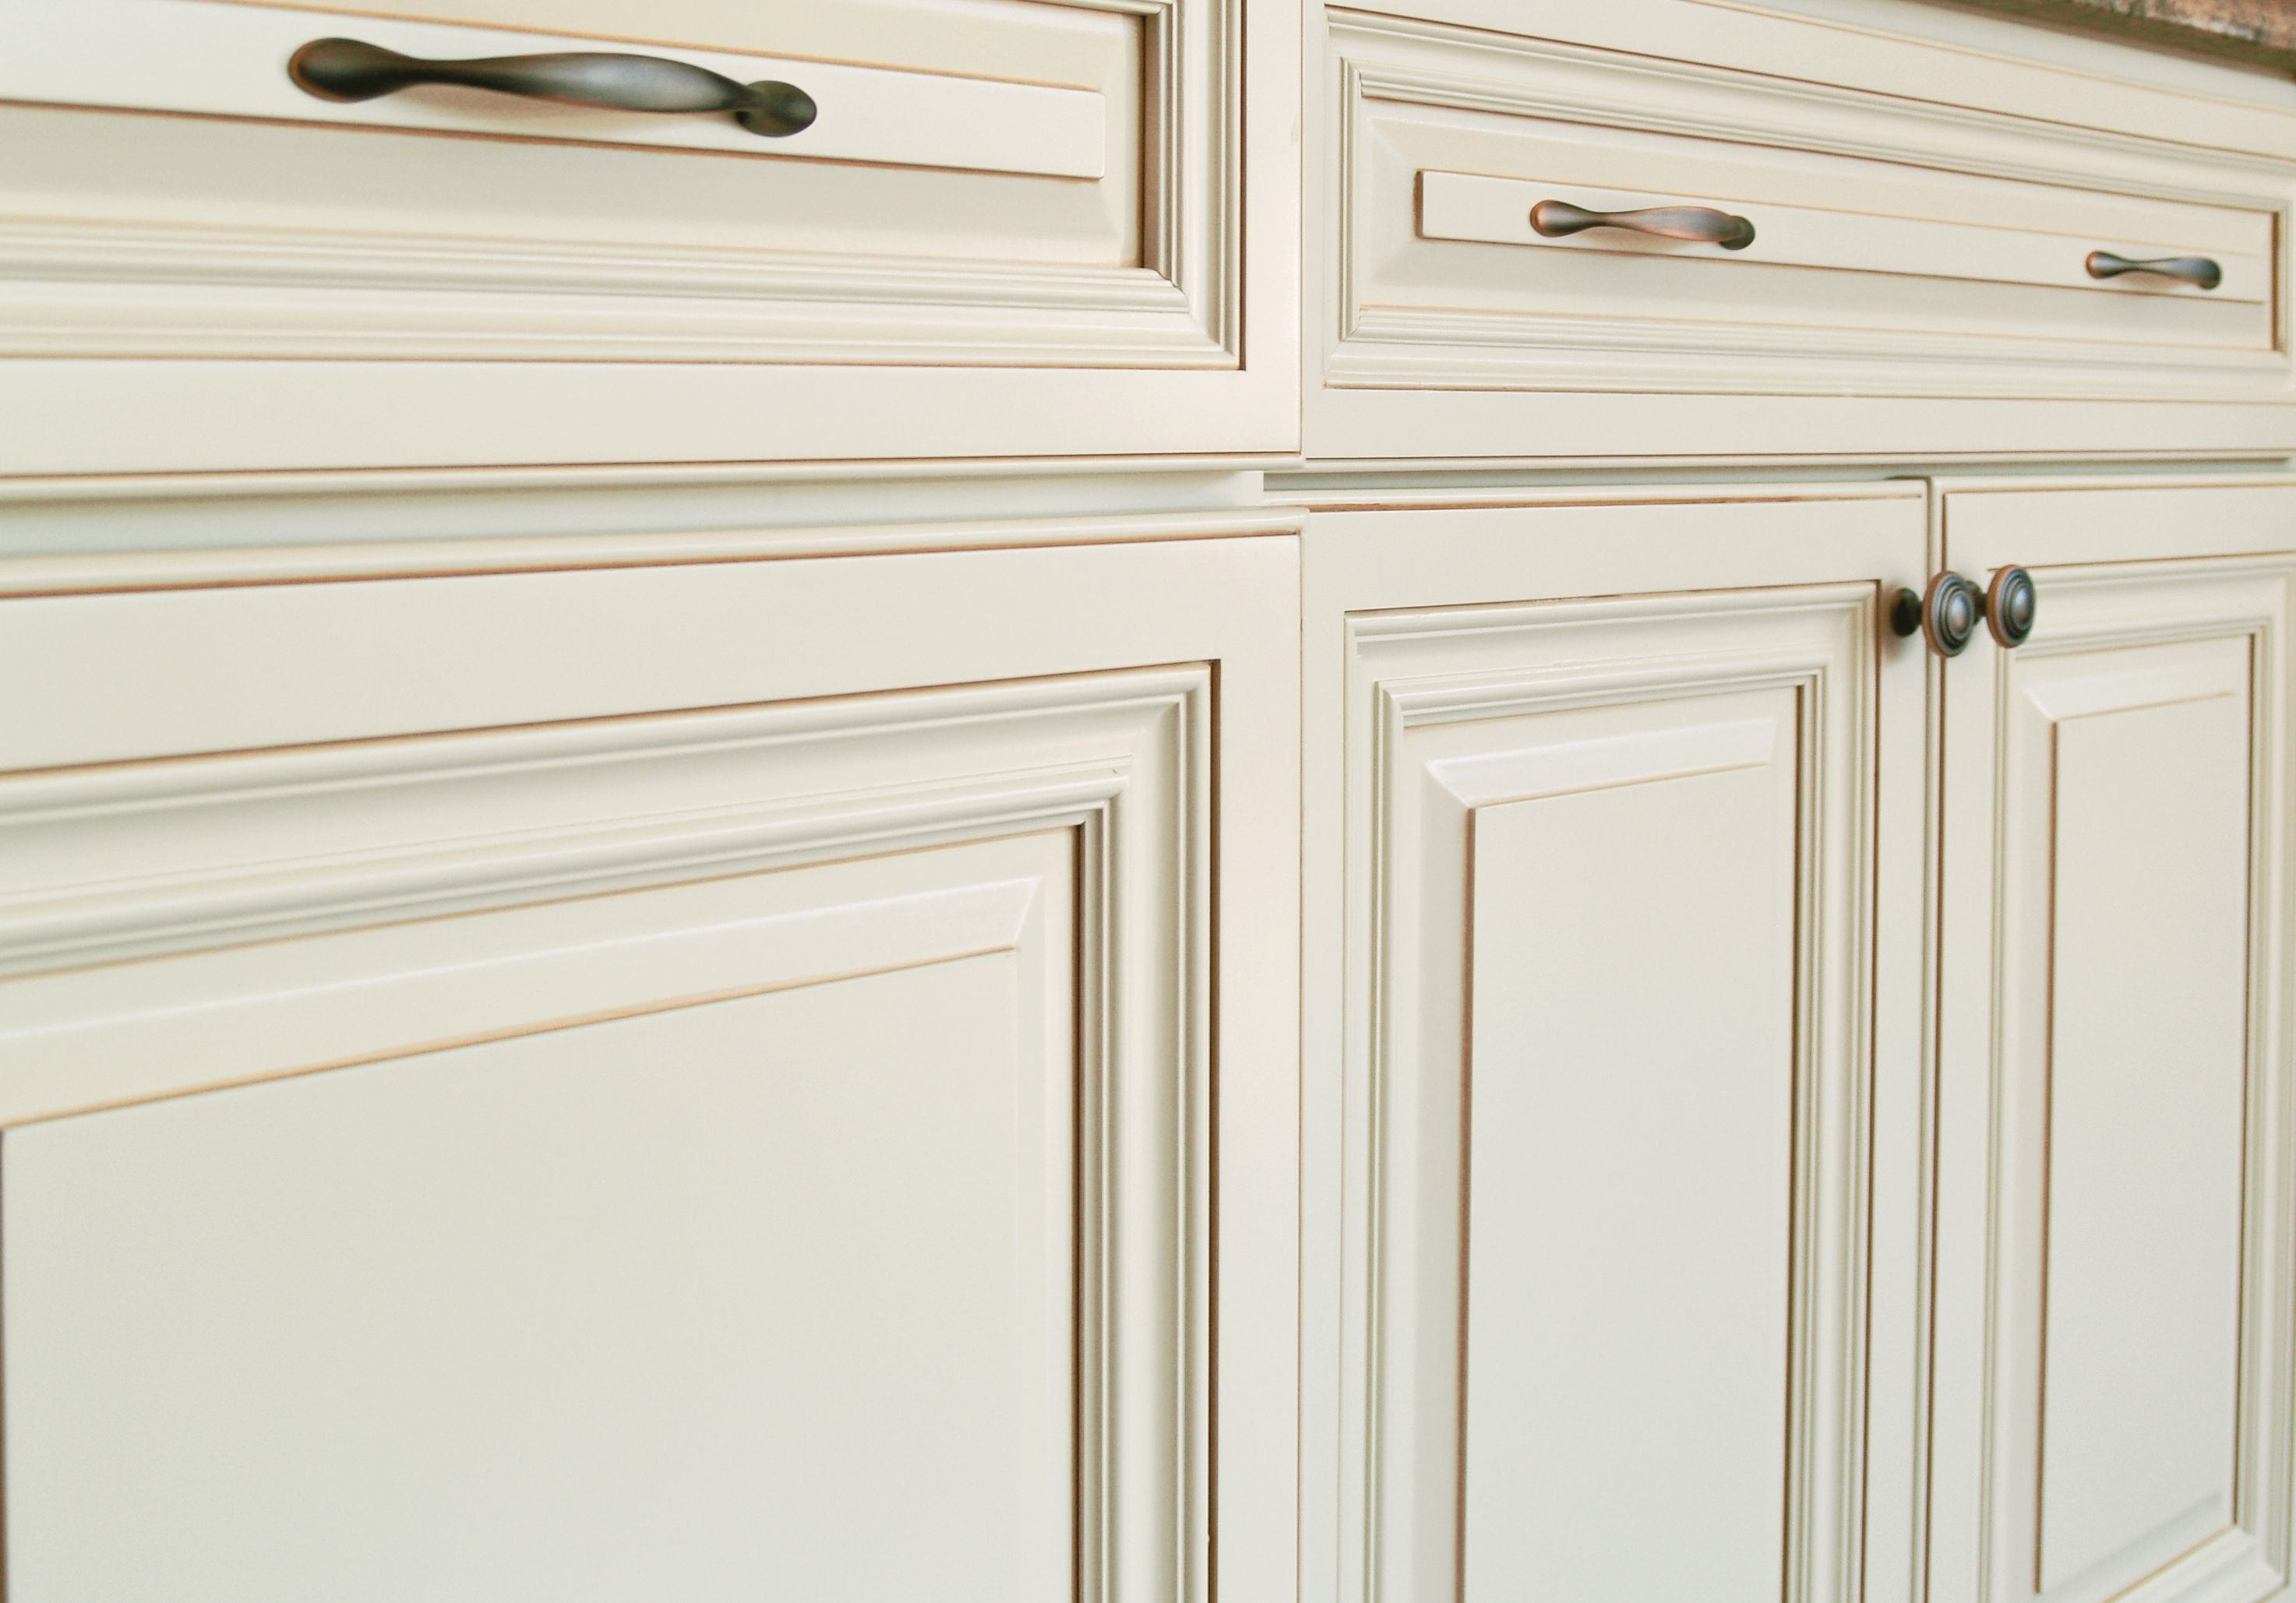 Renaissance Maple Raised Panel Painted Creamy Off White With